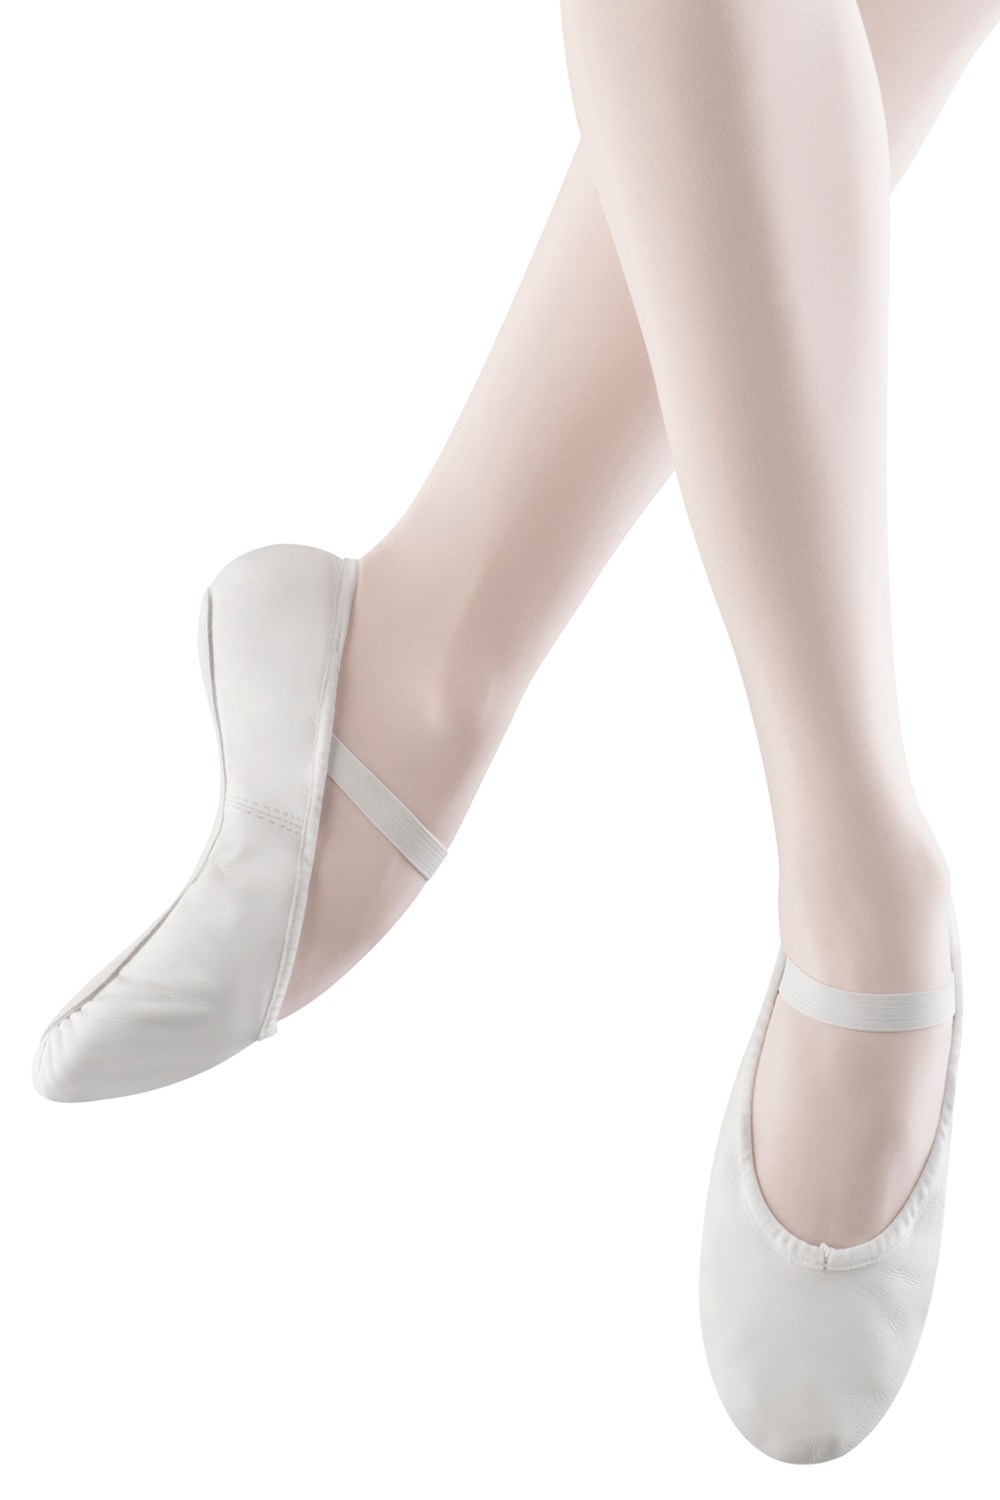 Arise - Bambina Girl's Ballet Shoes